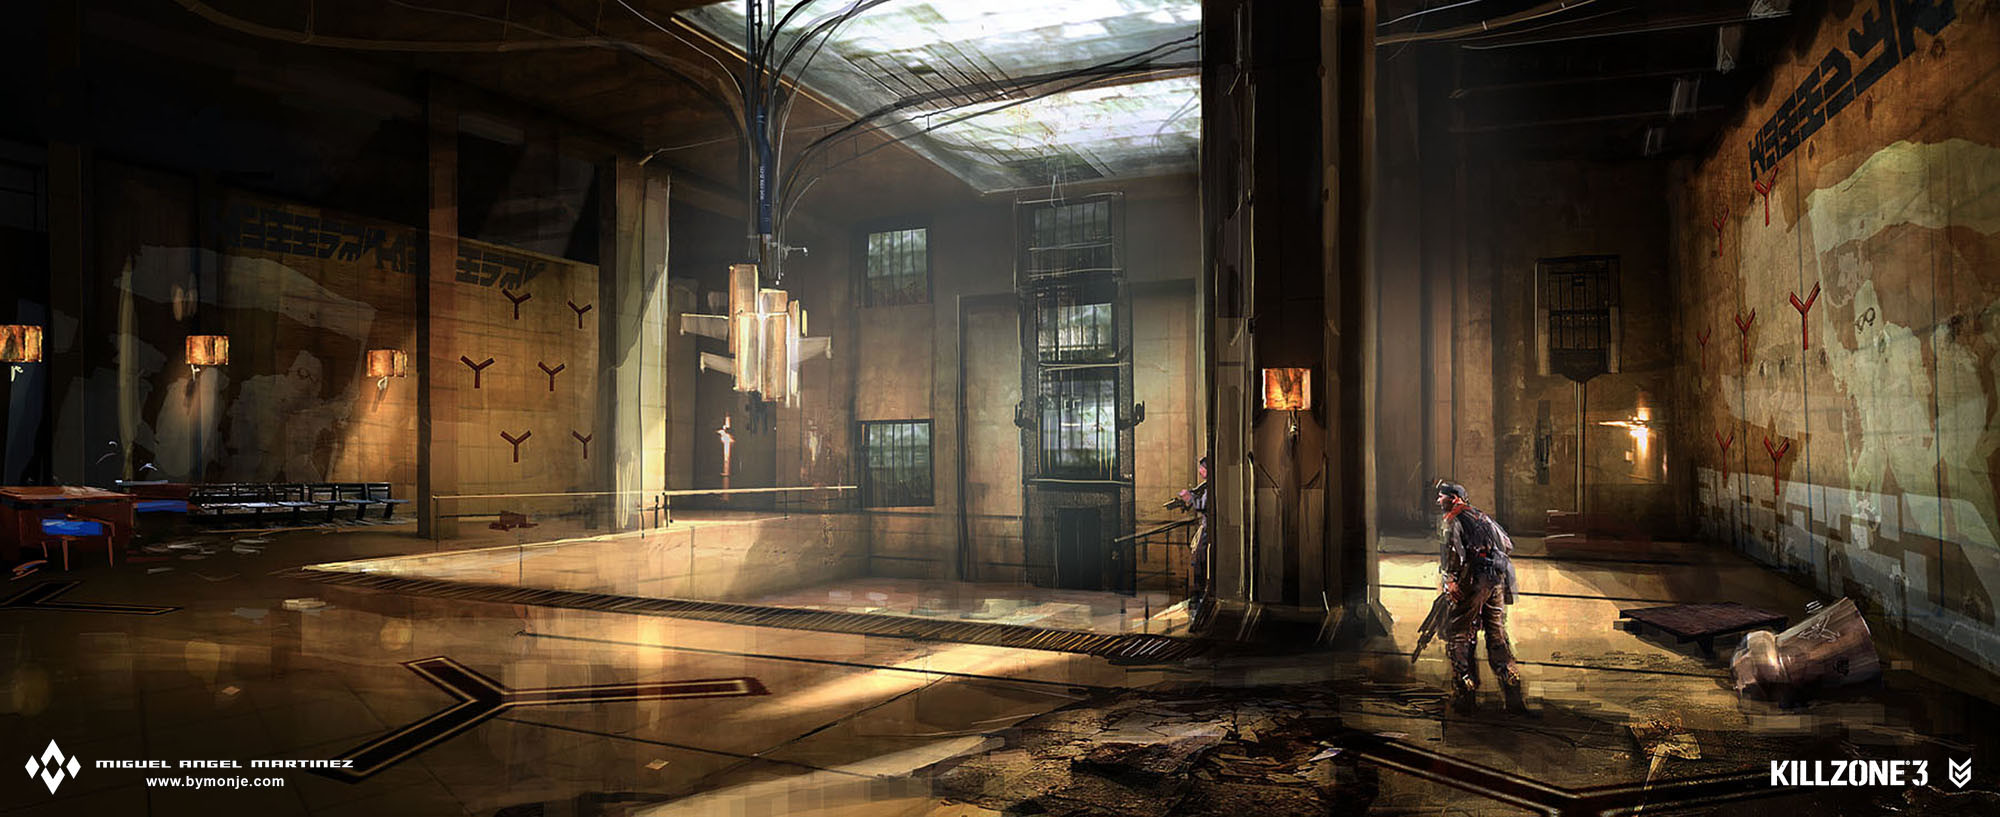 killzone 2 hall concept art miguel bymonje